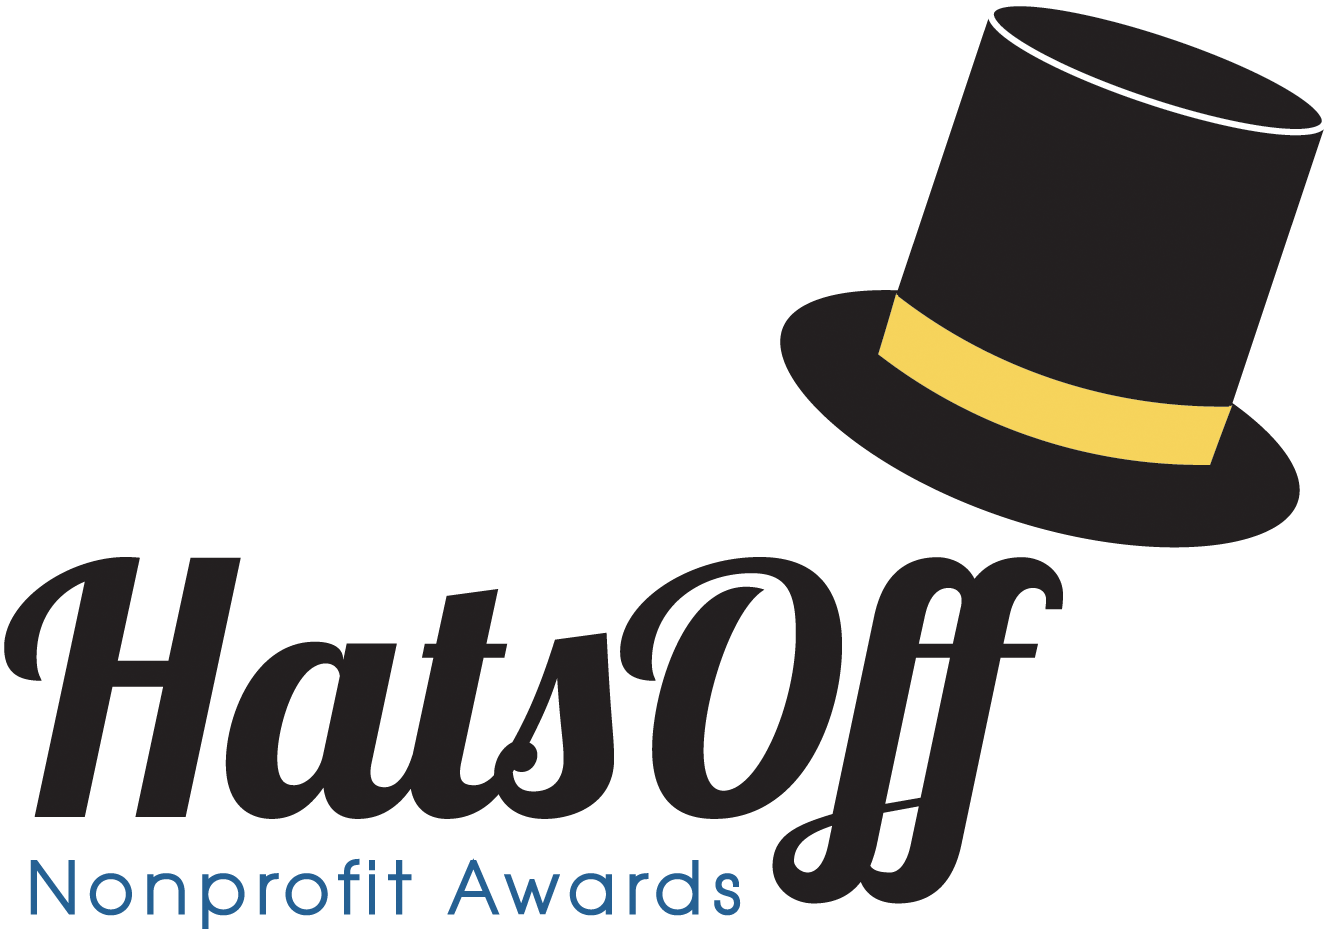 2018 Hats Off Nonprofit Award Honorees - Nonprofits First 30adaec1823